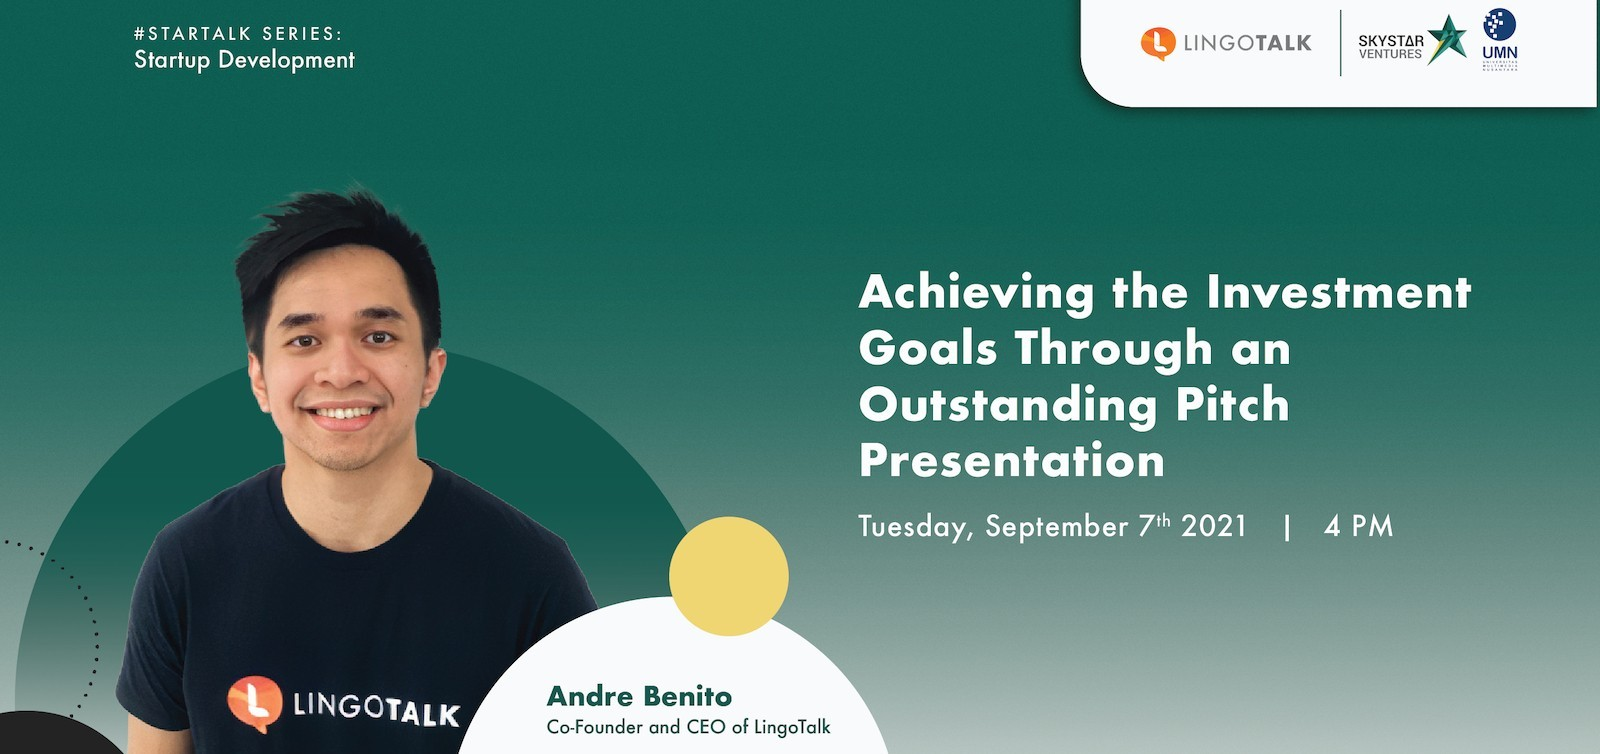 STARTALK - Achieving the Investment Goals Through an Outstanding Pitch Presentation